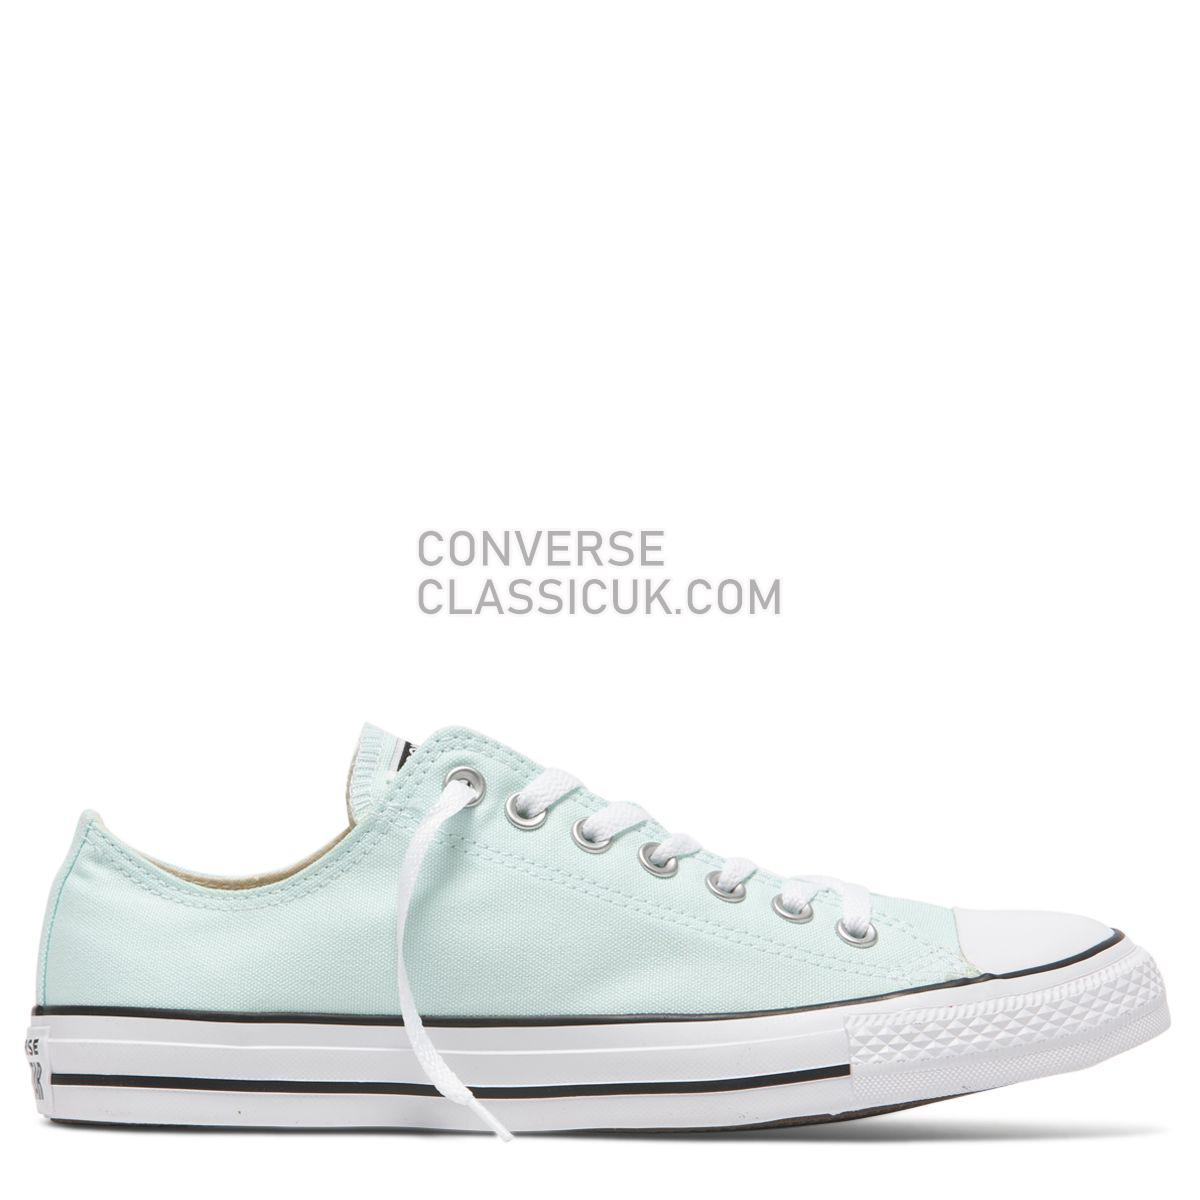 Converse Chuck Taylor All Star Seasonal Colour Low Top Teal Tint Mens Womens Unisex 163357 Teal Tint Shoes